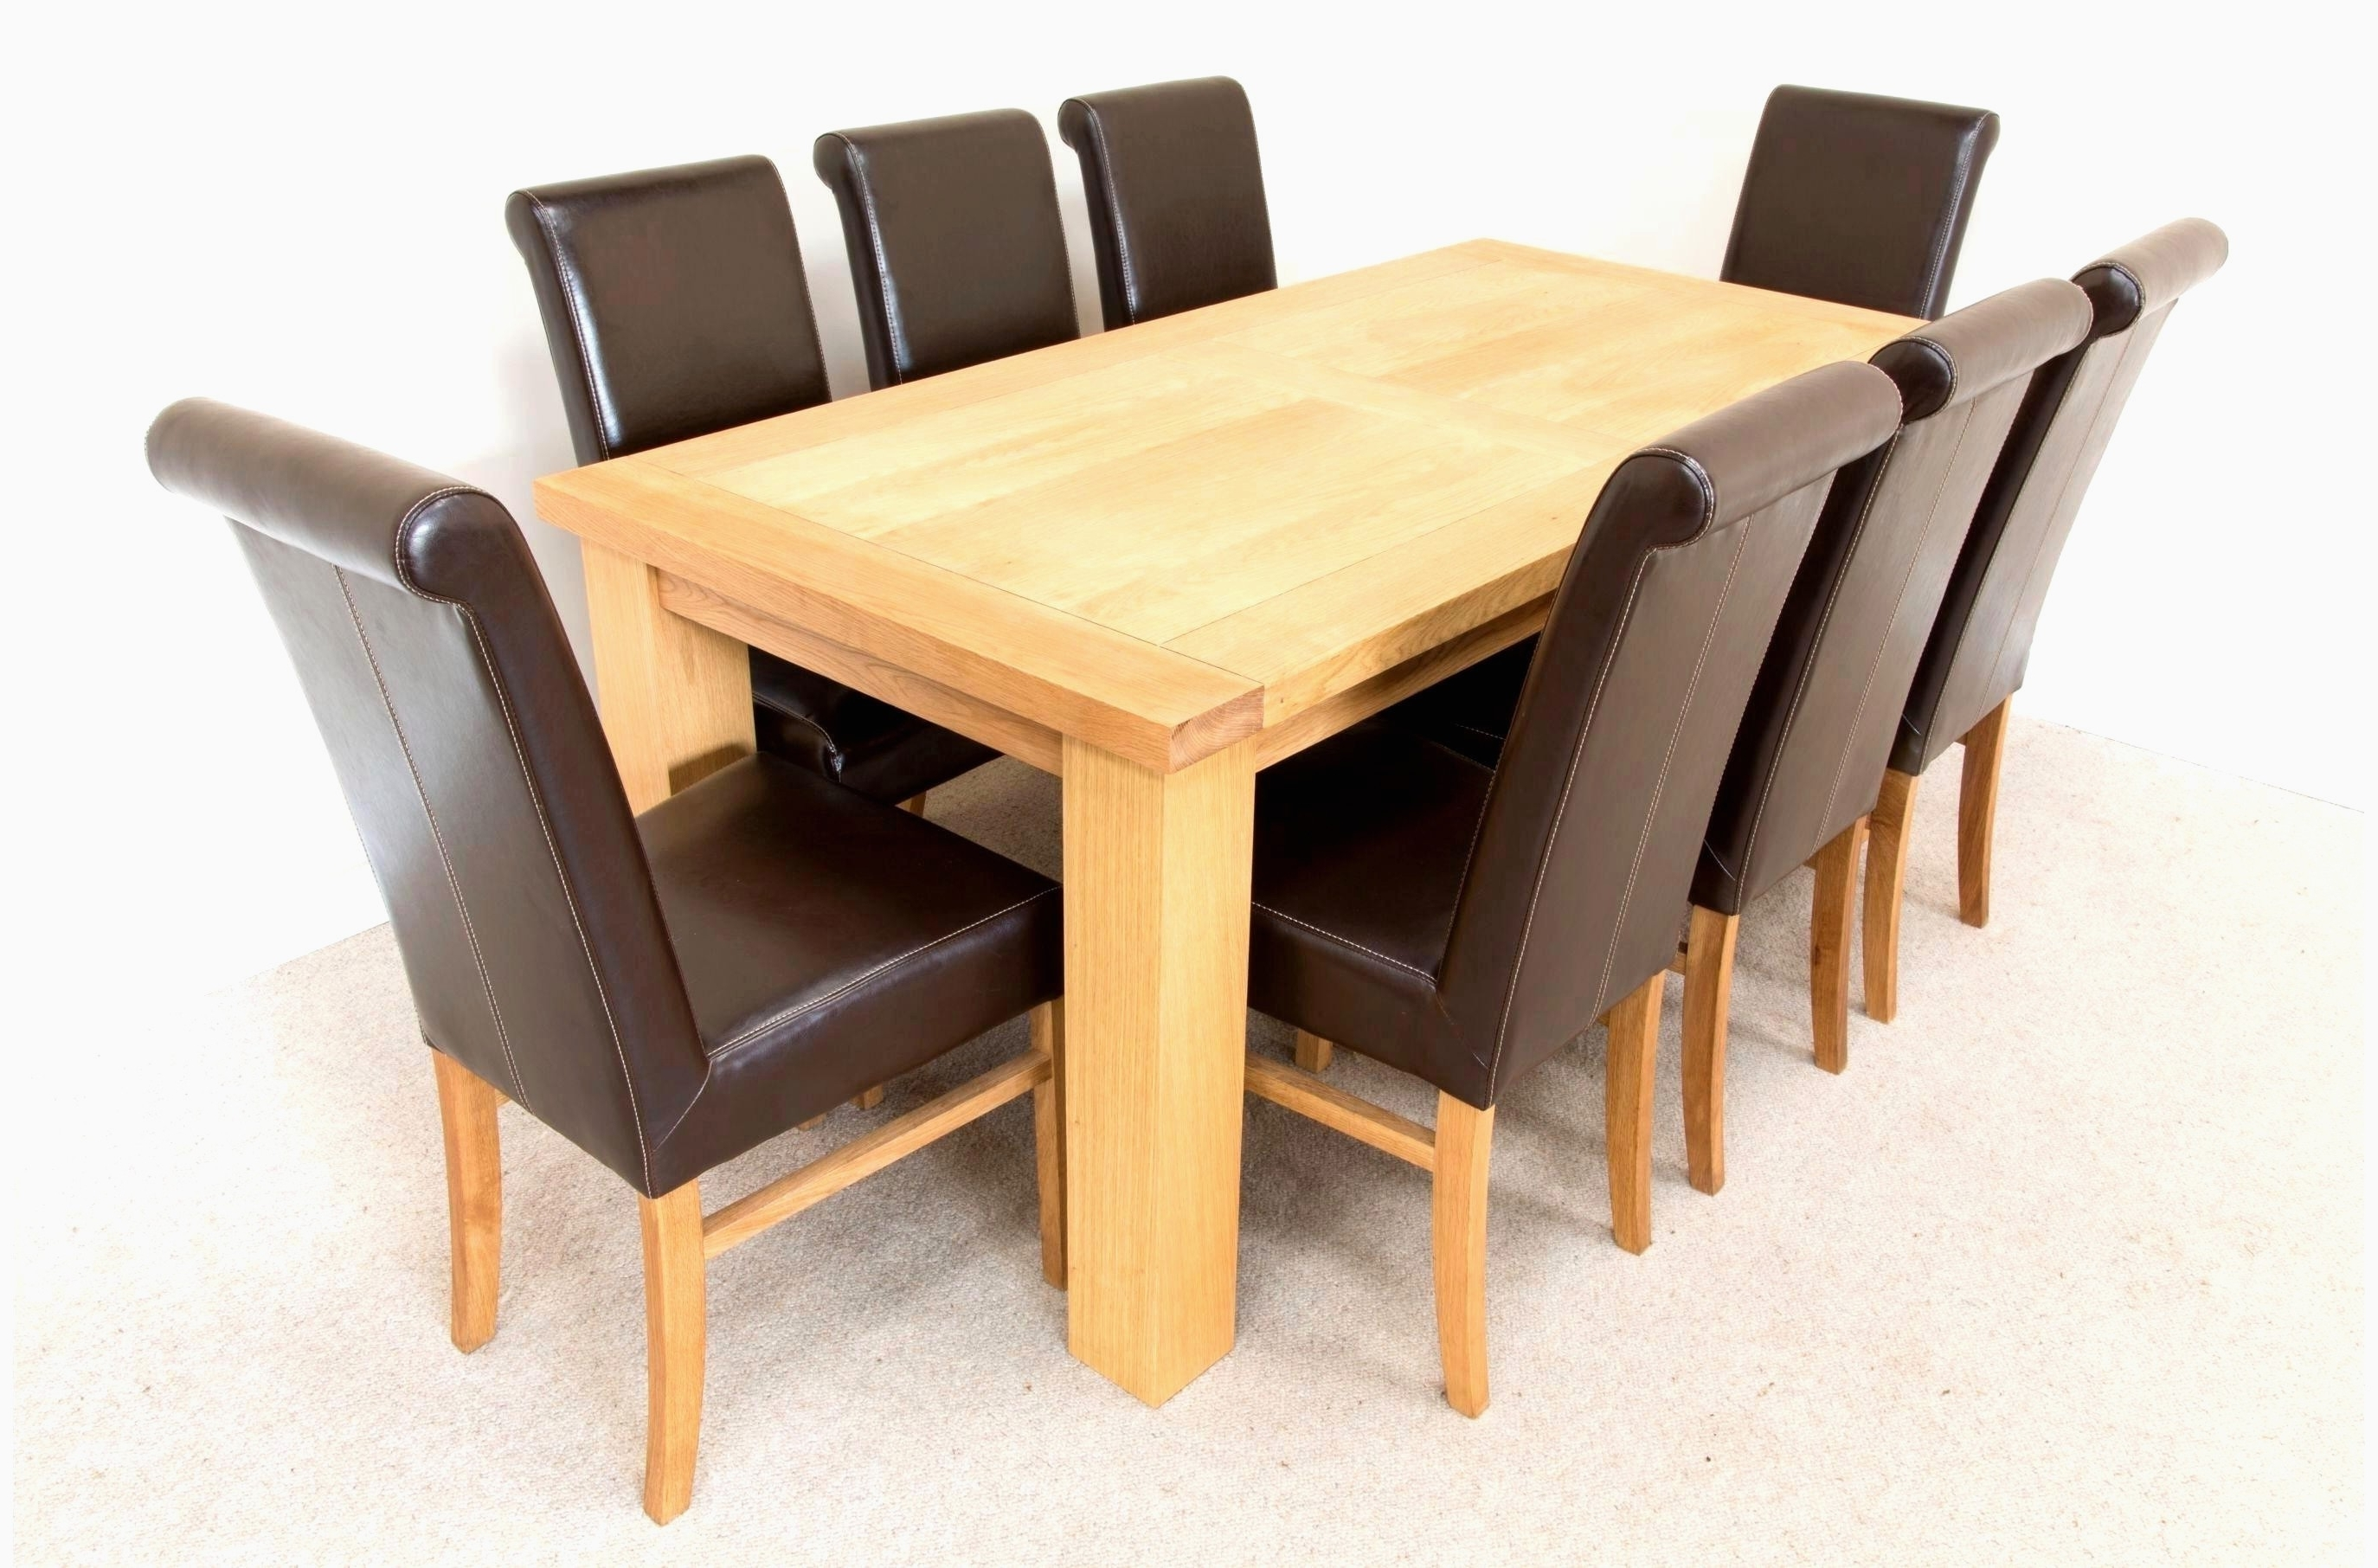 Solid Oak Dining Room Table And 8 Chairs Fresh 28 Classy Raw Wood With Most Current Oak Dining Tables 8 Chairs (View 12 of 25)